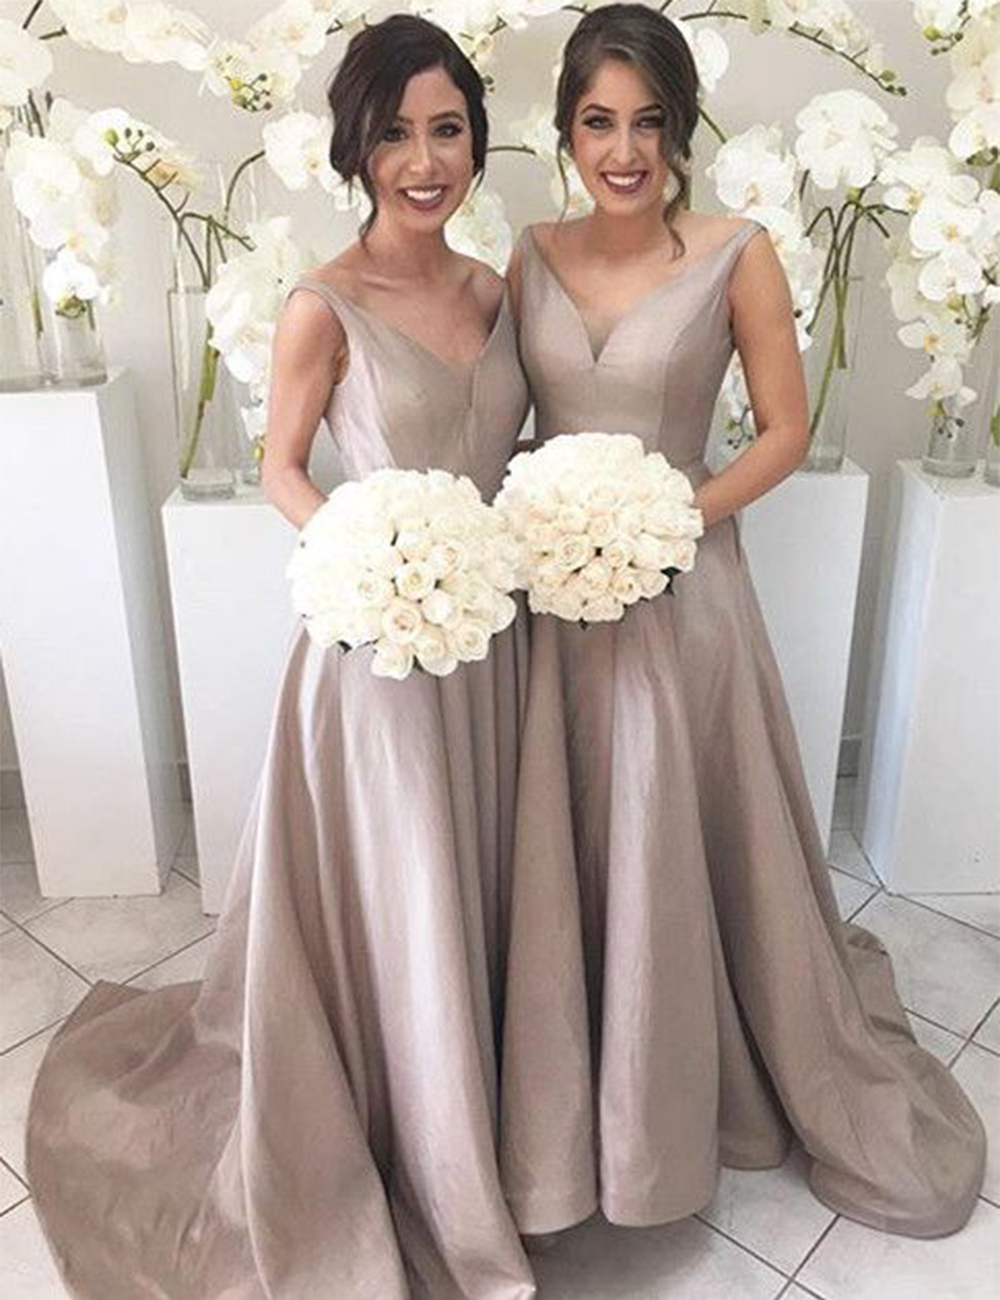 Fashion women champagne bridesmaid dresses sexy v neck satin fashion women champagne bridesmaid dresses sexy v neck satin bridesmaid dress long wedding party dress formal gowns b93 in bridesmaid dresses from weddings ombrellifo Images